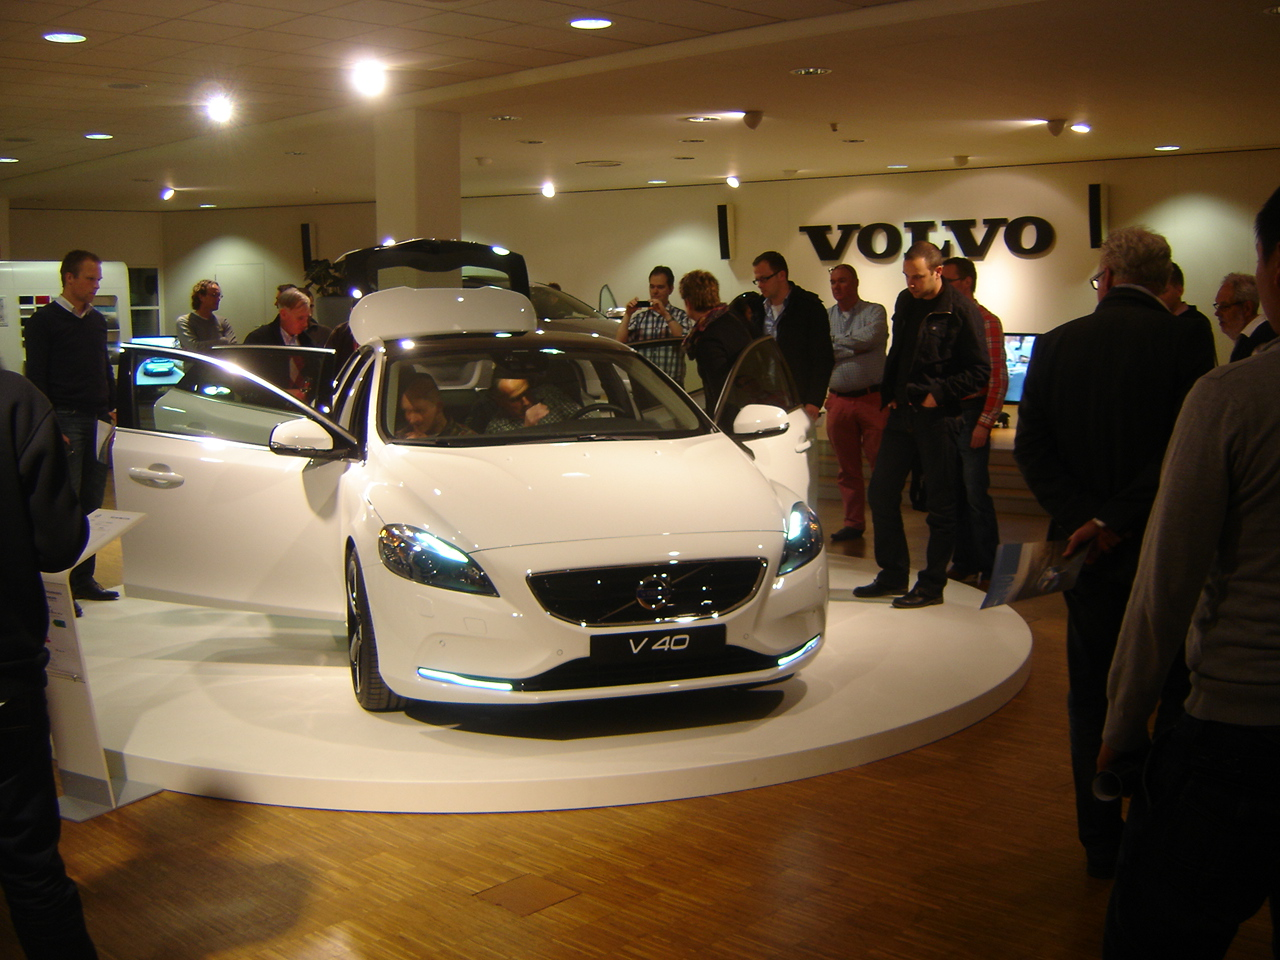 VOLVO V40 brown